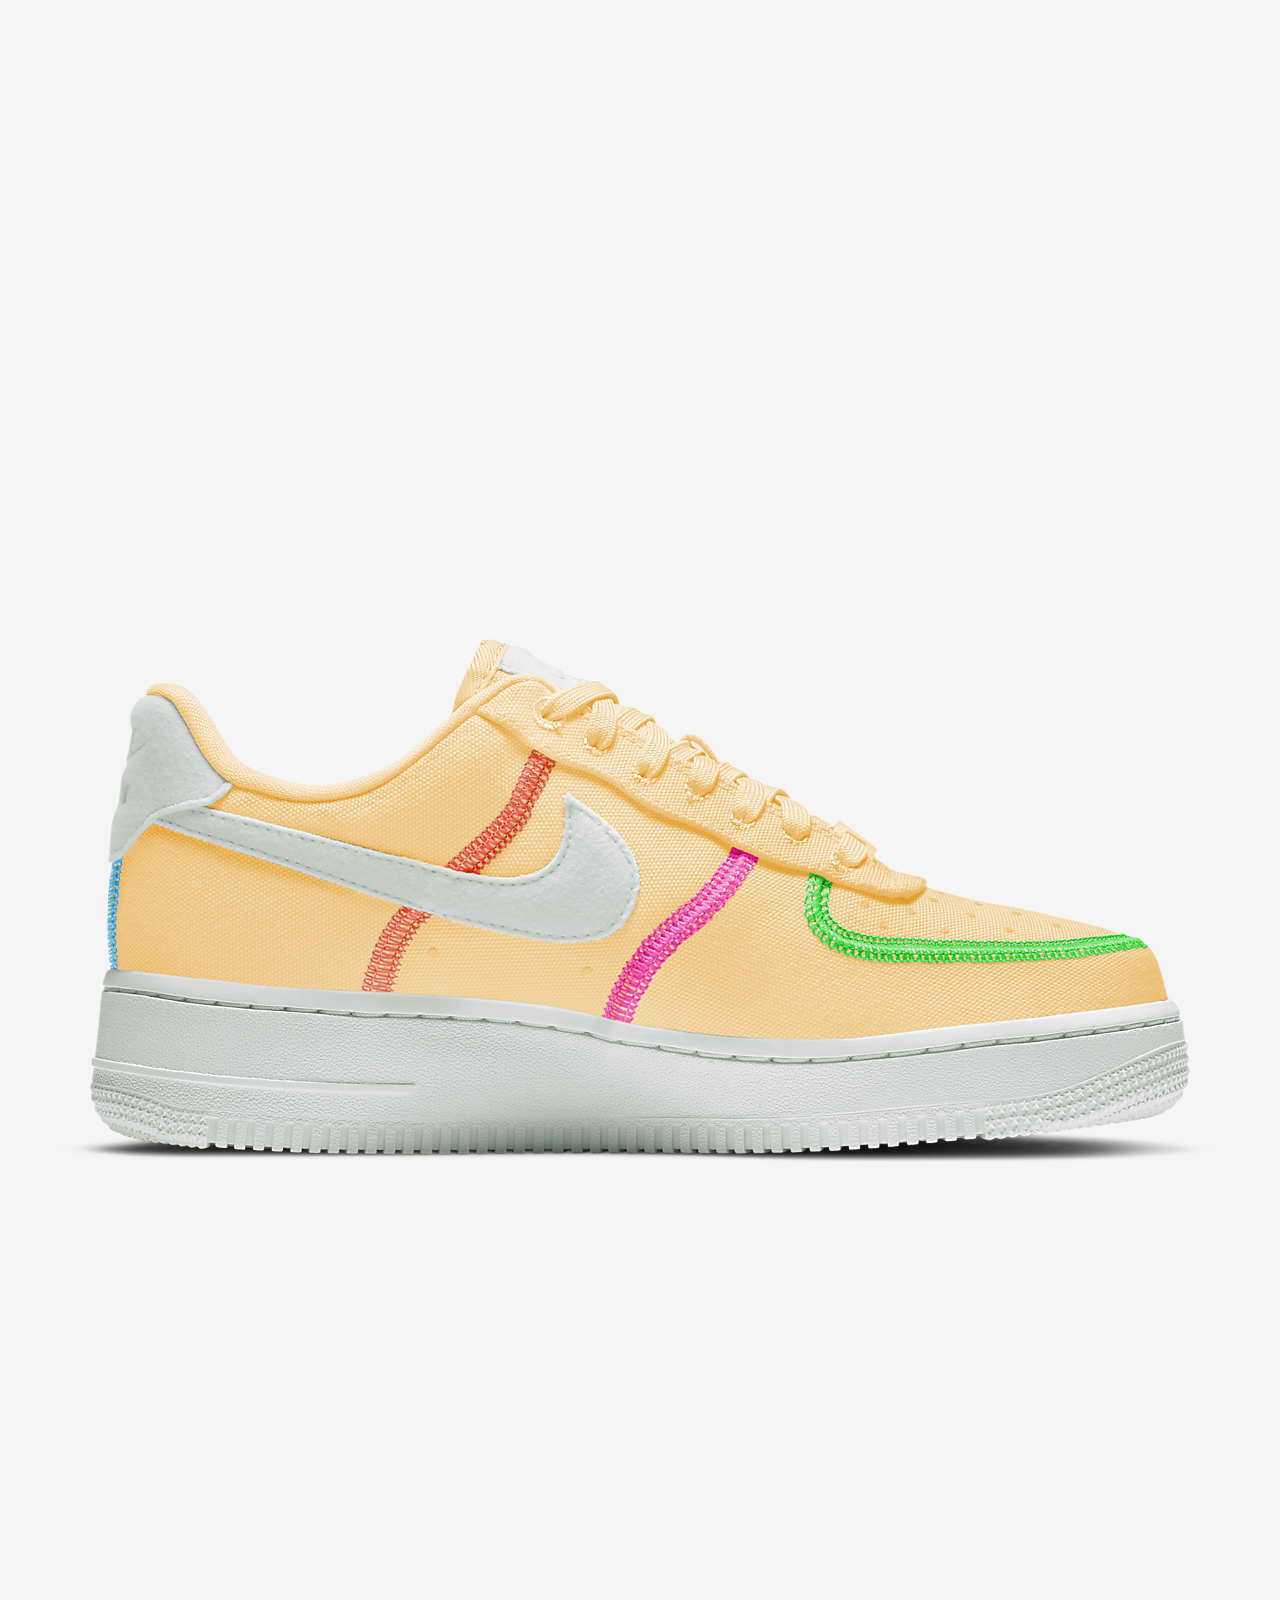 Chaussure Nike Air Force 1 '07 LX pour Femme